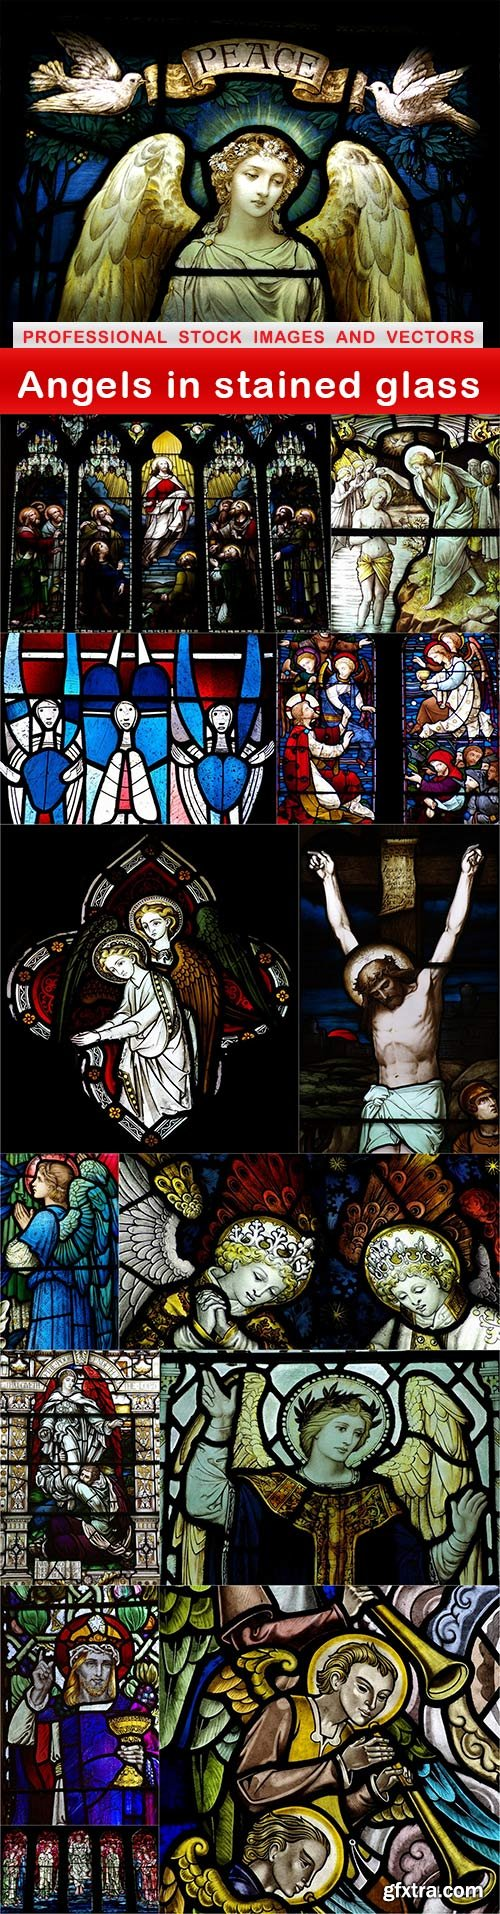 Angels in stained glass - 14 UHQ JPEG